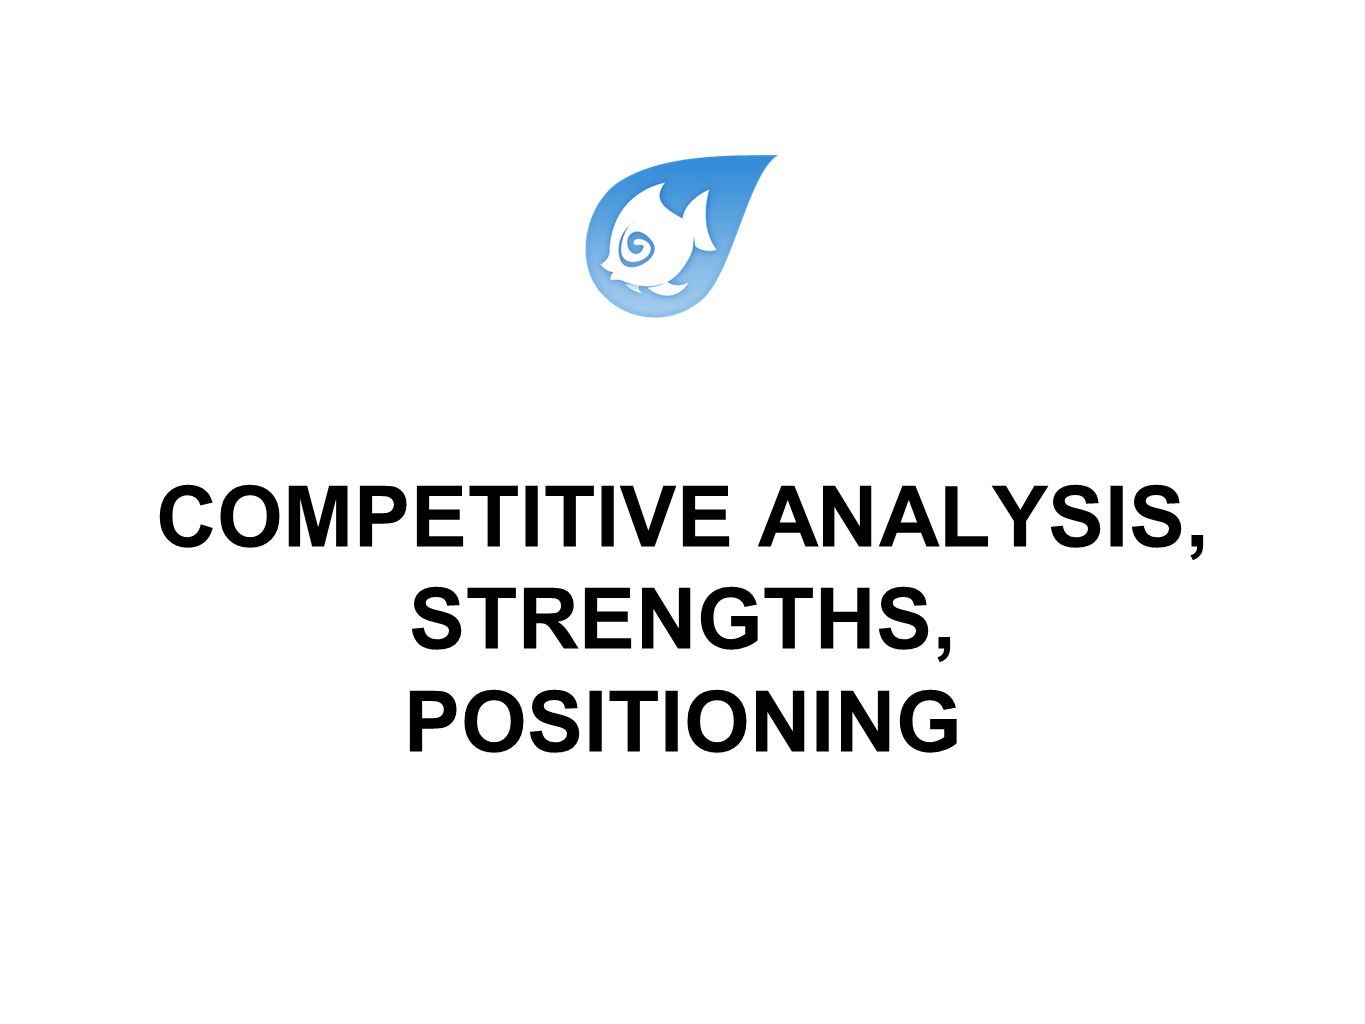 COMPETITIVE ANALYSIS, STRENGTHS, POSITIONING  Mag+ Adobe